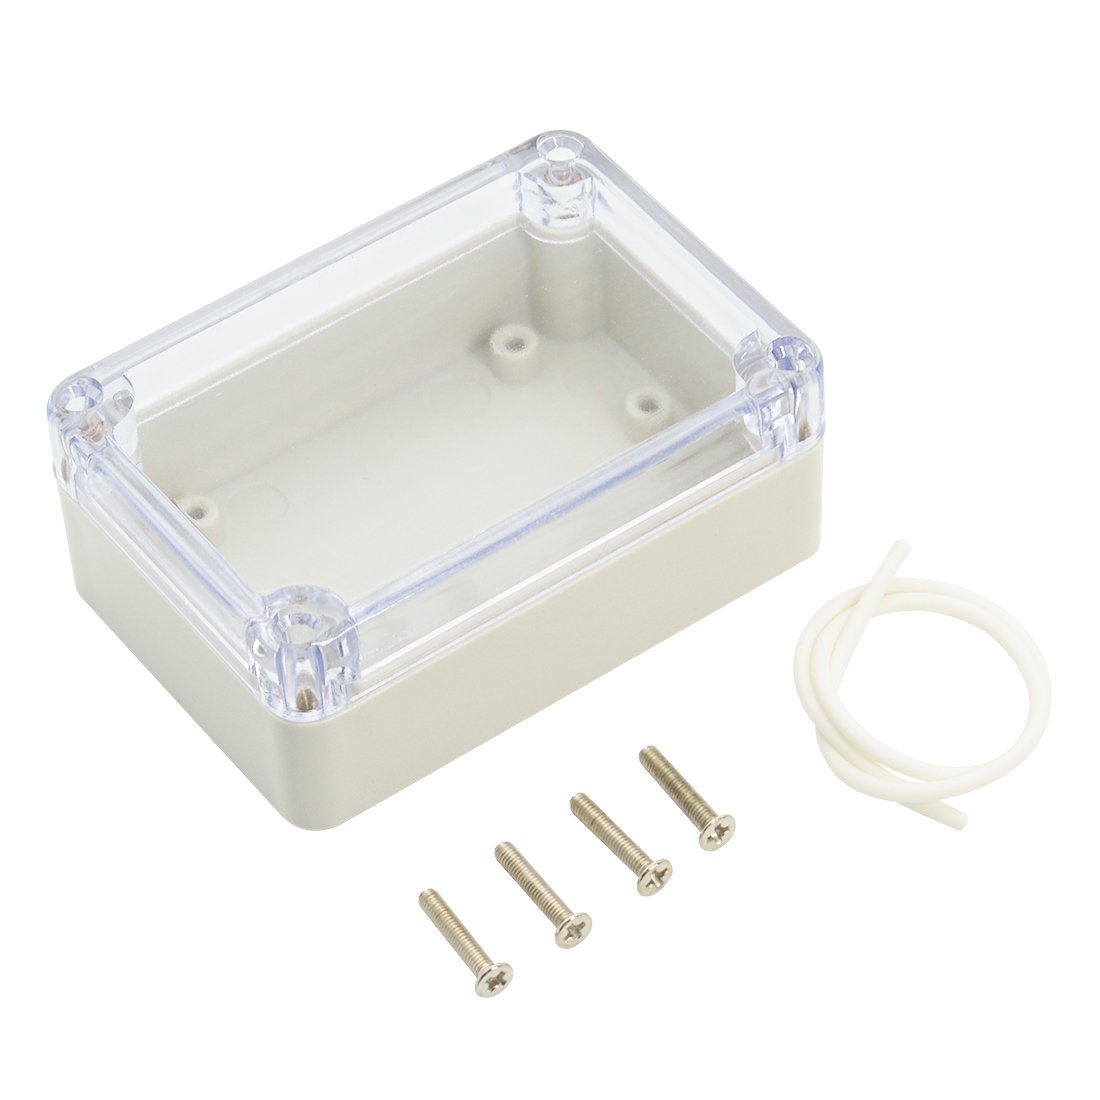 LeMotech ABS Plastic Junction Box, Dustproof Waterproof IP65 Electrical Box - Universal Project Enclosure Grey, with PC Transparent/Clear Cover 3.9'x2.7'x2'(100mm x 68mm x 50mm) with PC Transparent/Clear Cover 3.9x2.7x2(100mm x 68mm x 50mm)